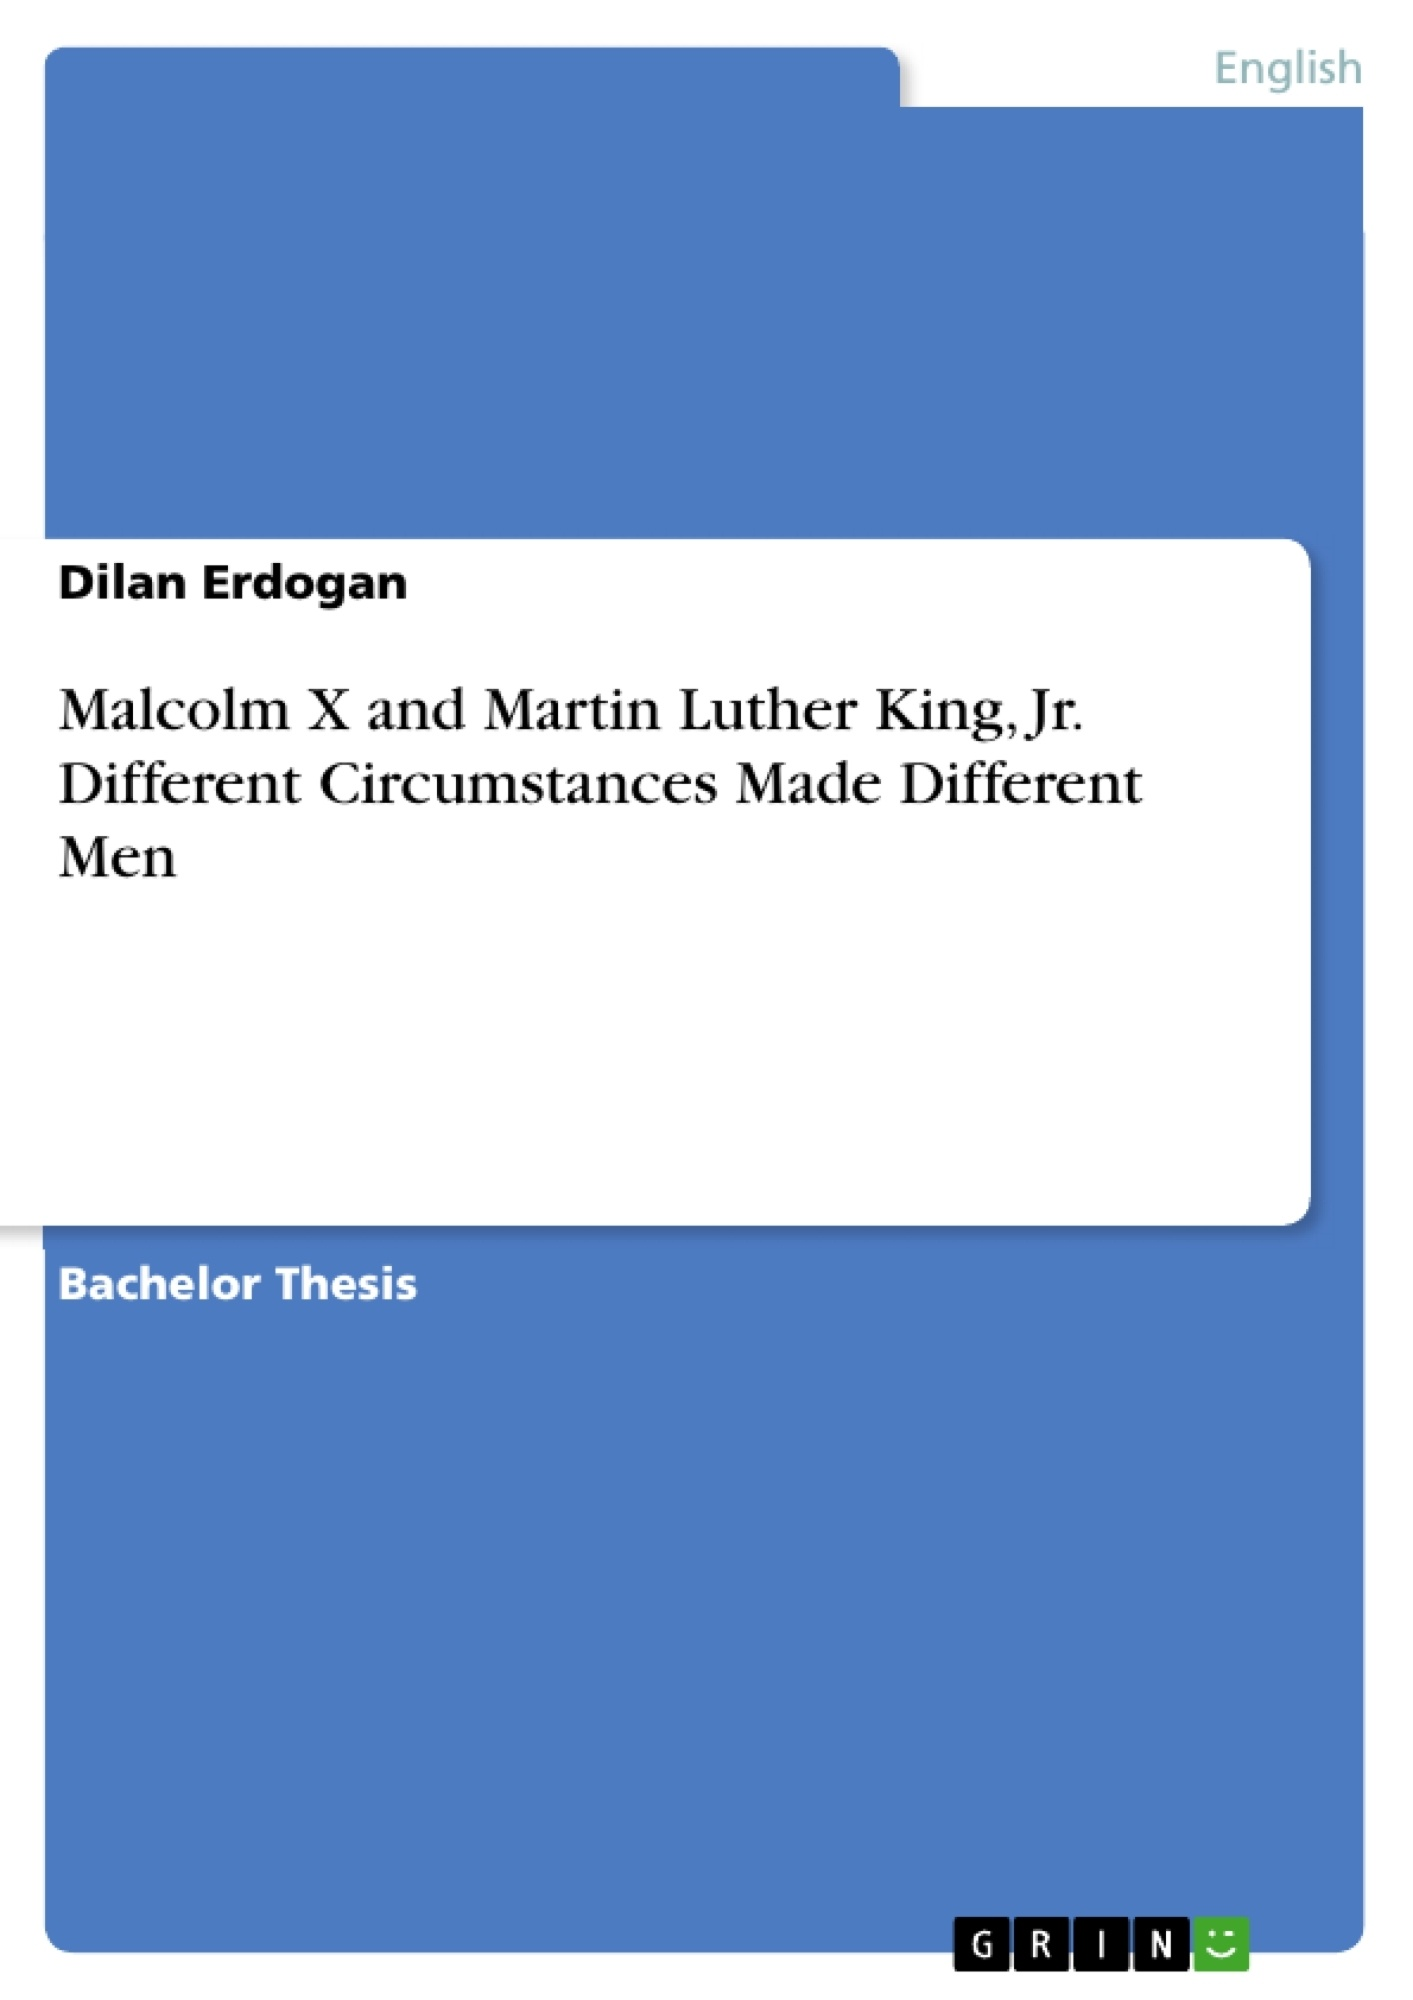 Title: Malcolm X and Martin Luther King, Jr. Different Circumstances Made Different Men